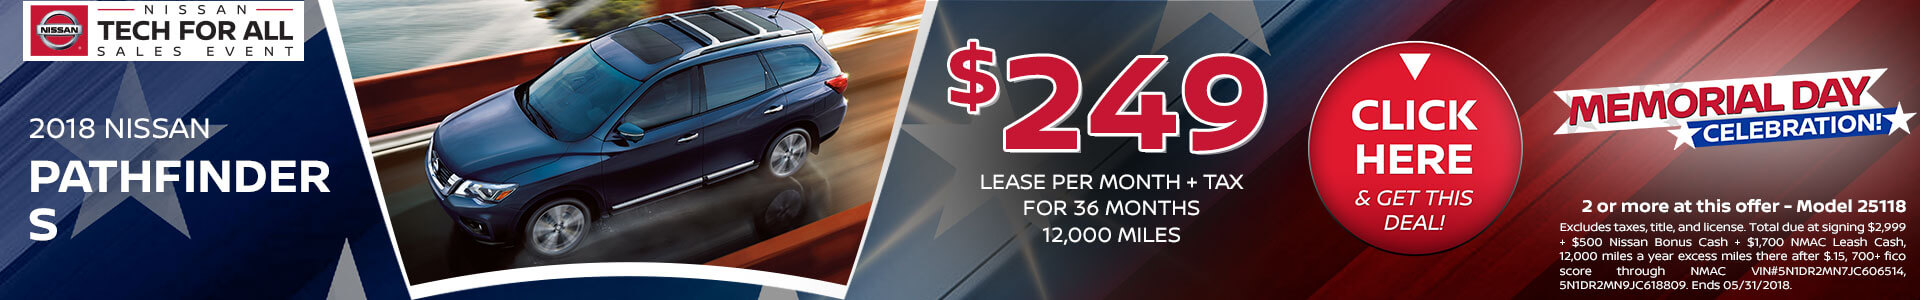 Pathfinder Lease $249